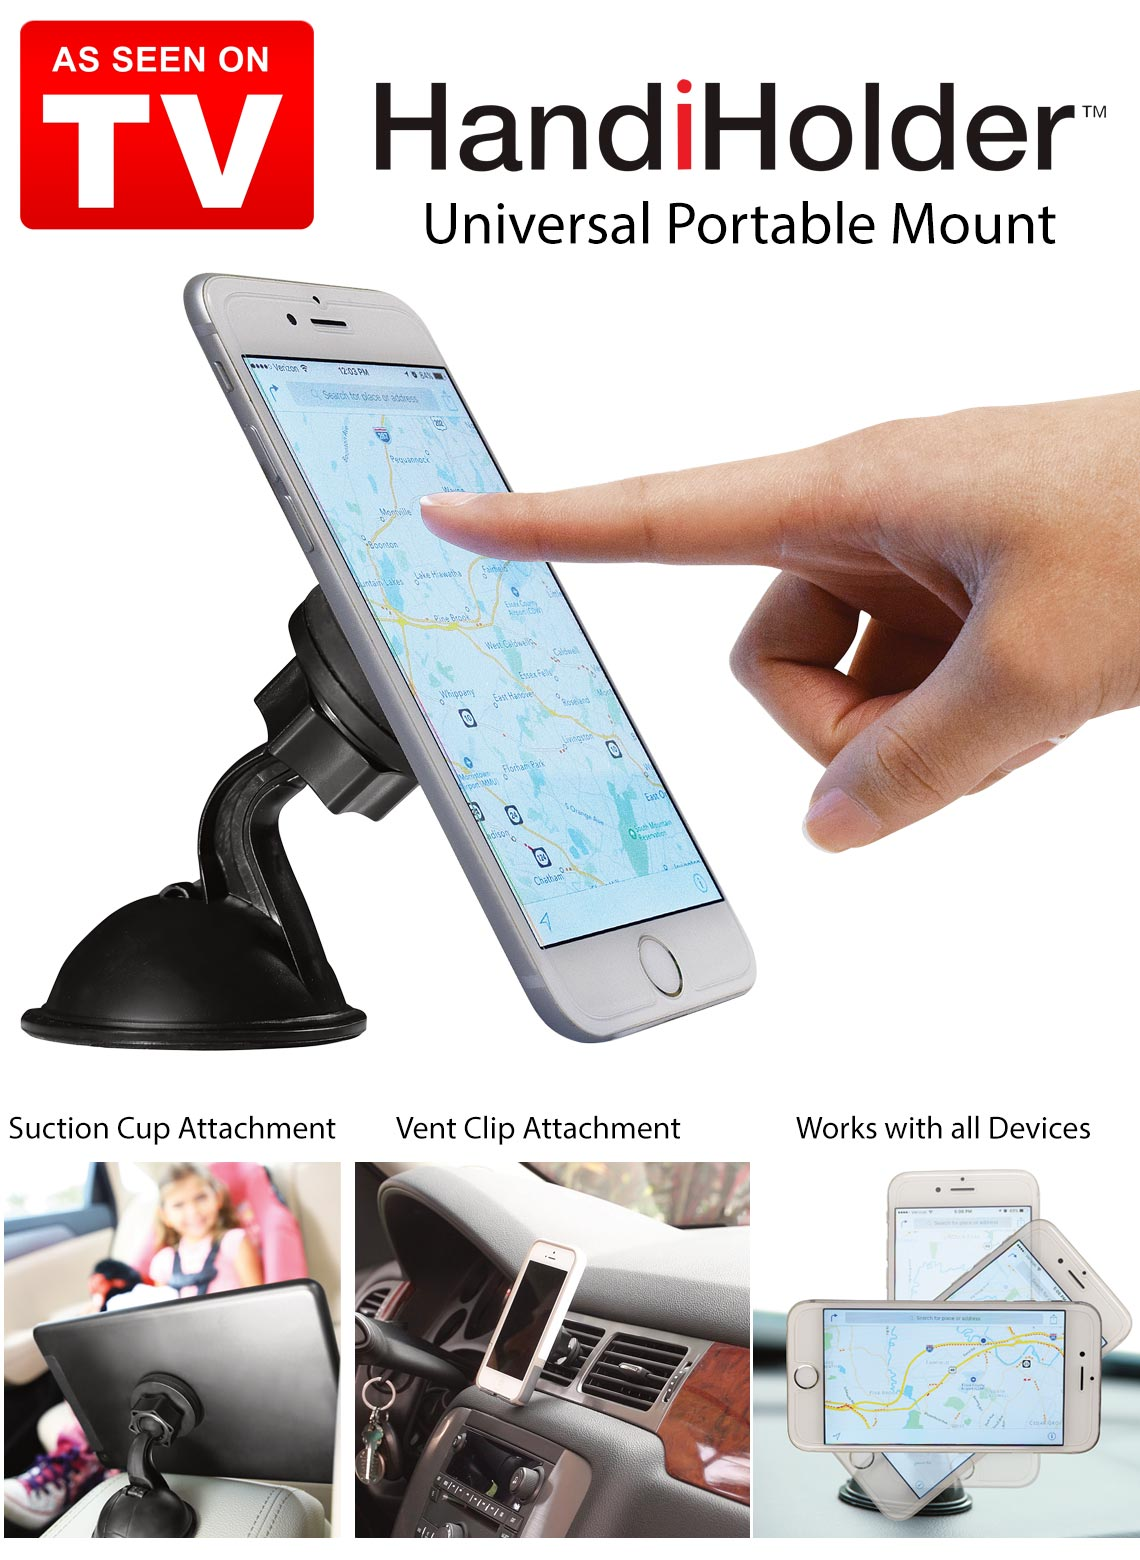 handiholder magnetic phone mount as seen on tv